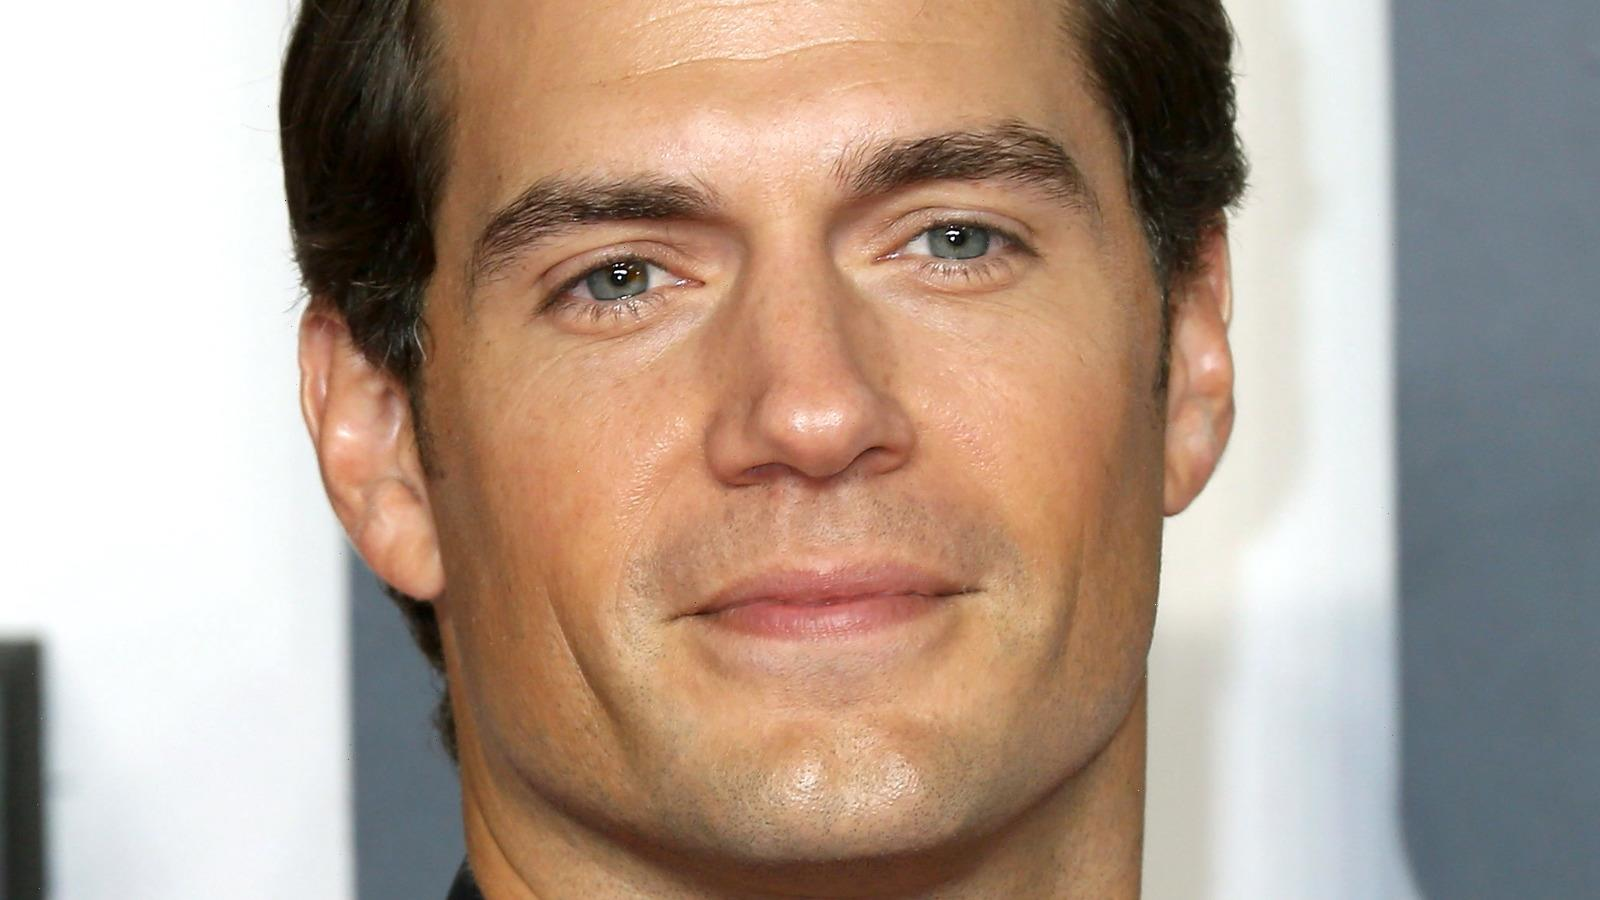 The Transformation Of Henry Cavill From A Toddler To 38 Years Old